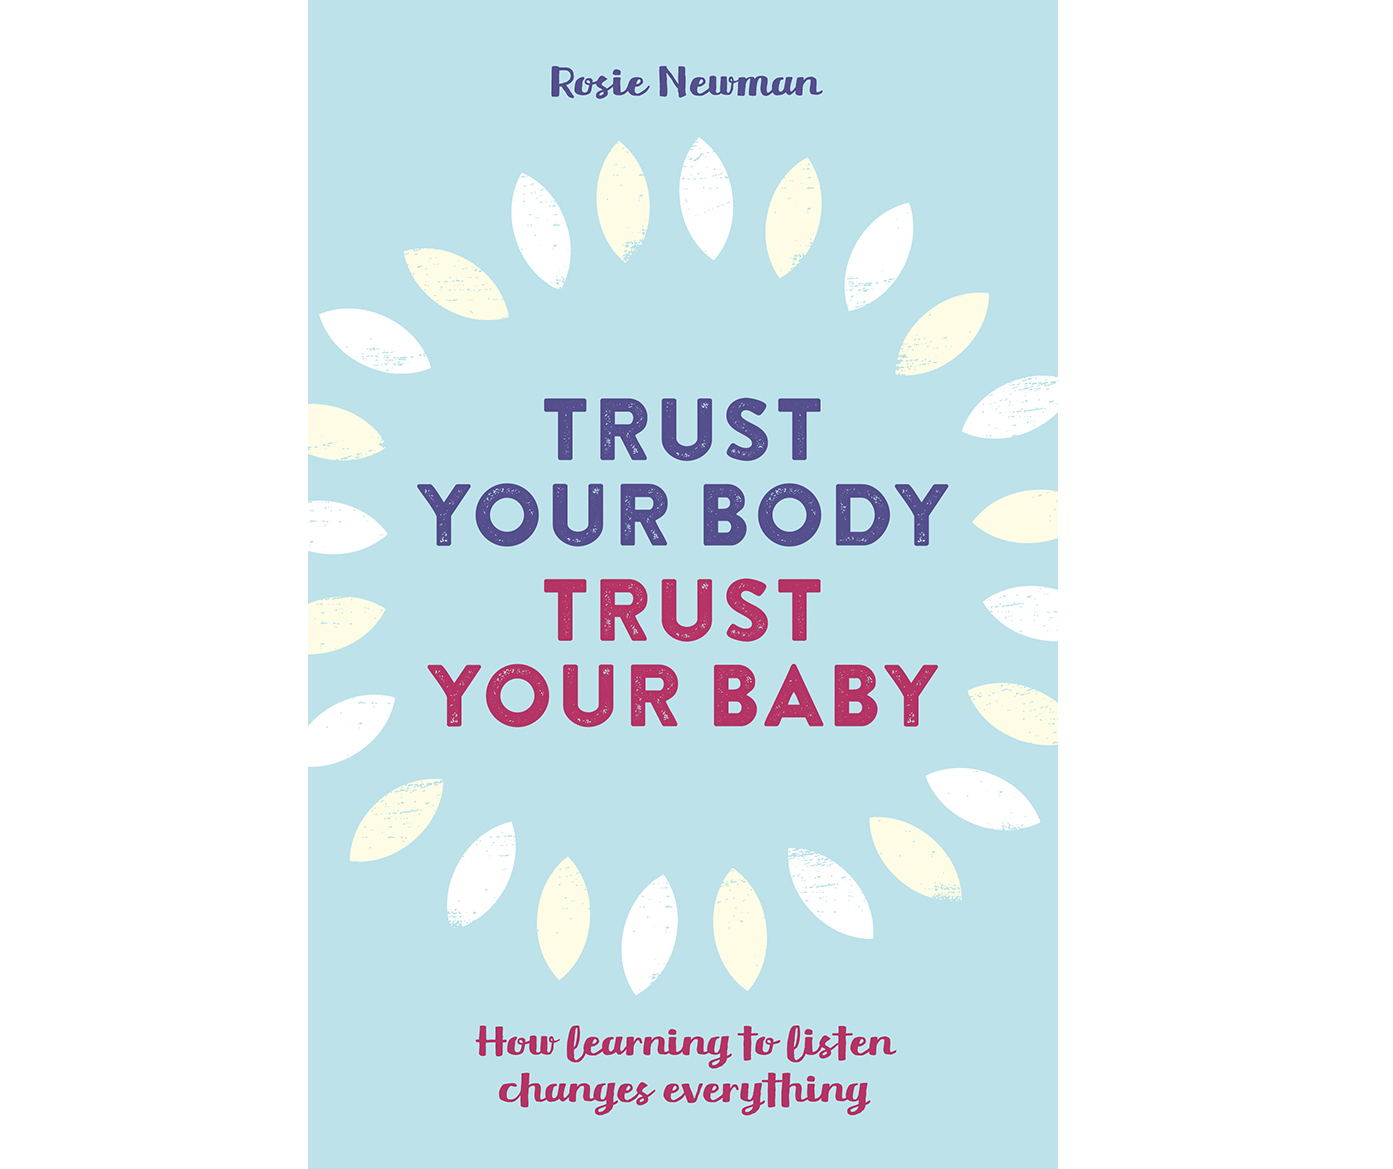 Trust Your Body Trust Your Baby cover (Pinter & Martin/PA)